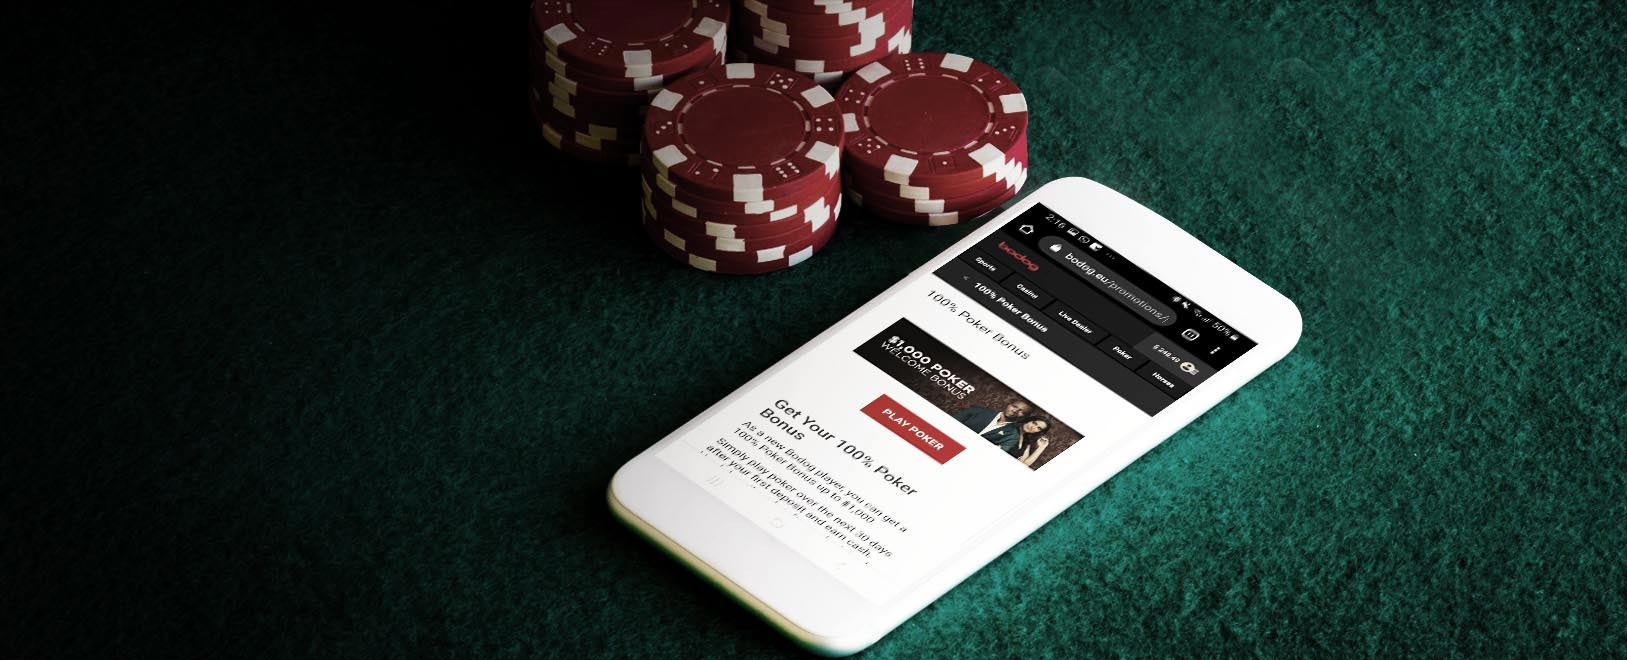 Bodog poker mobile app